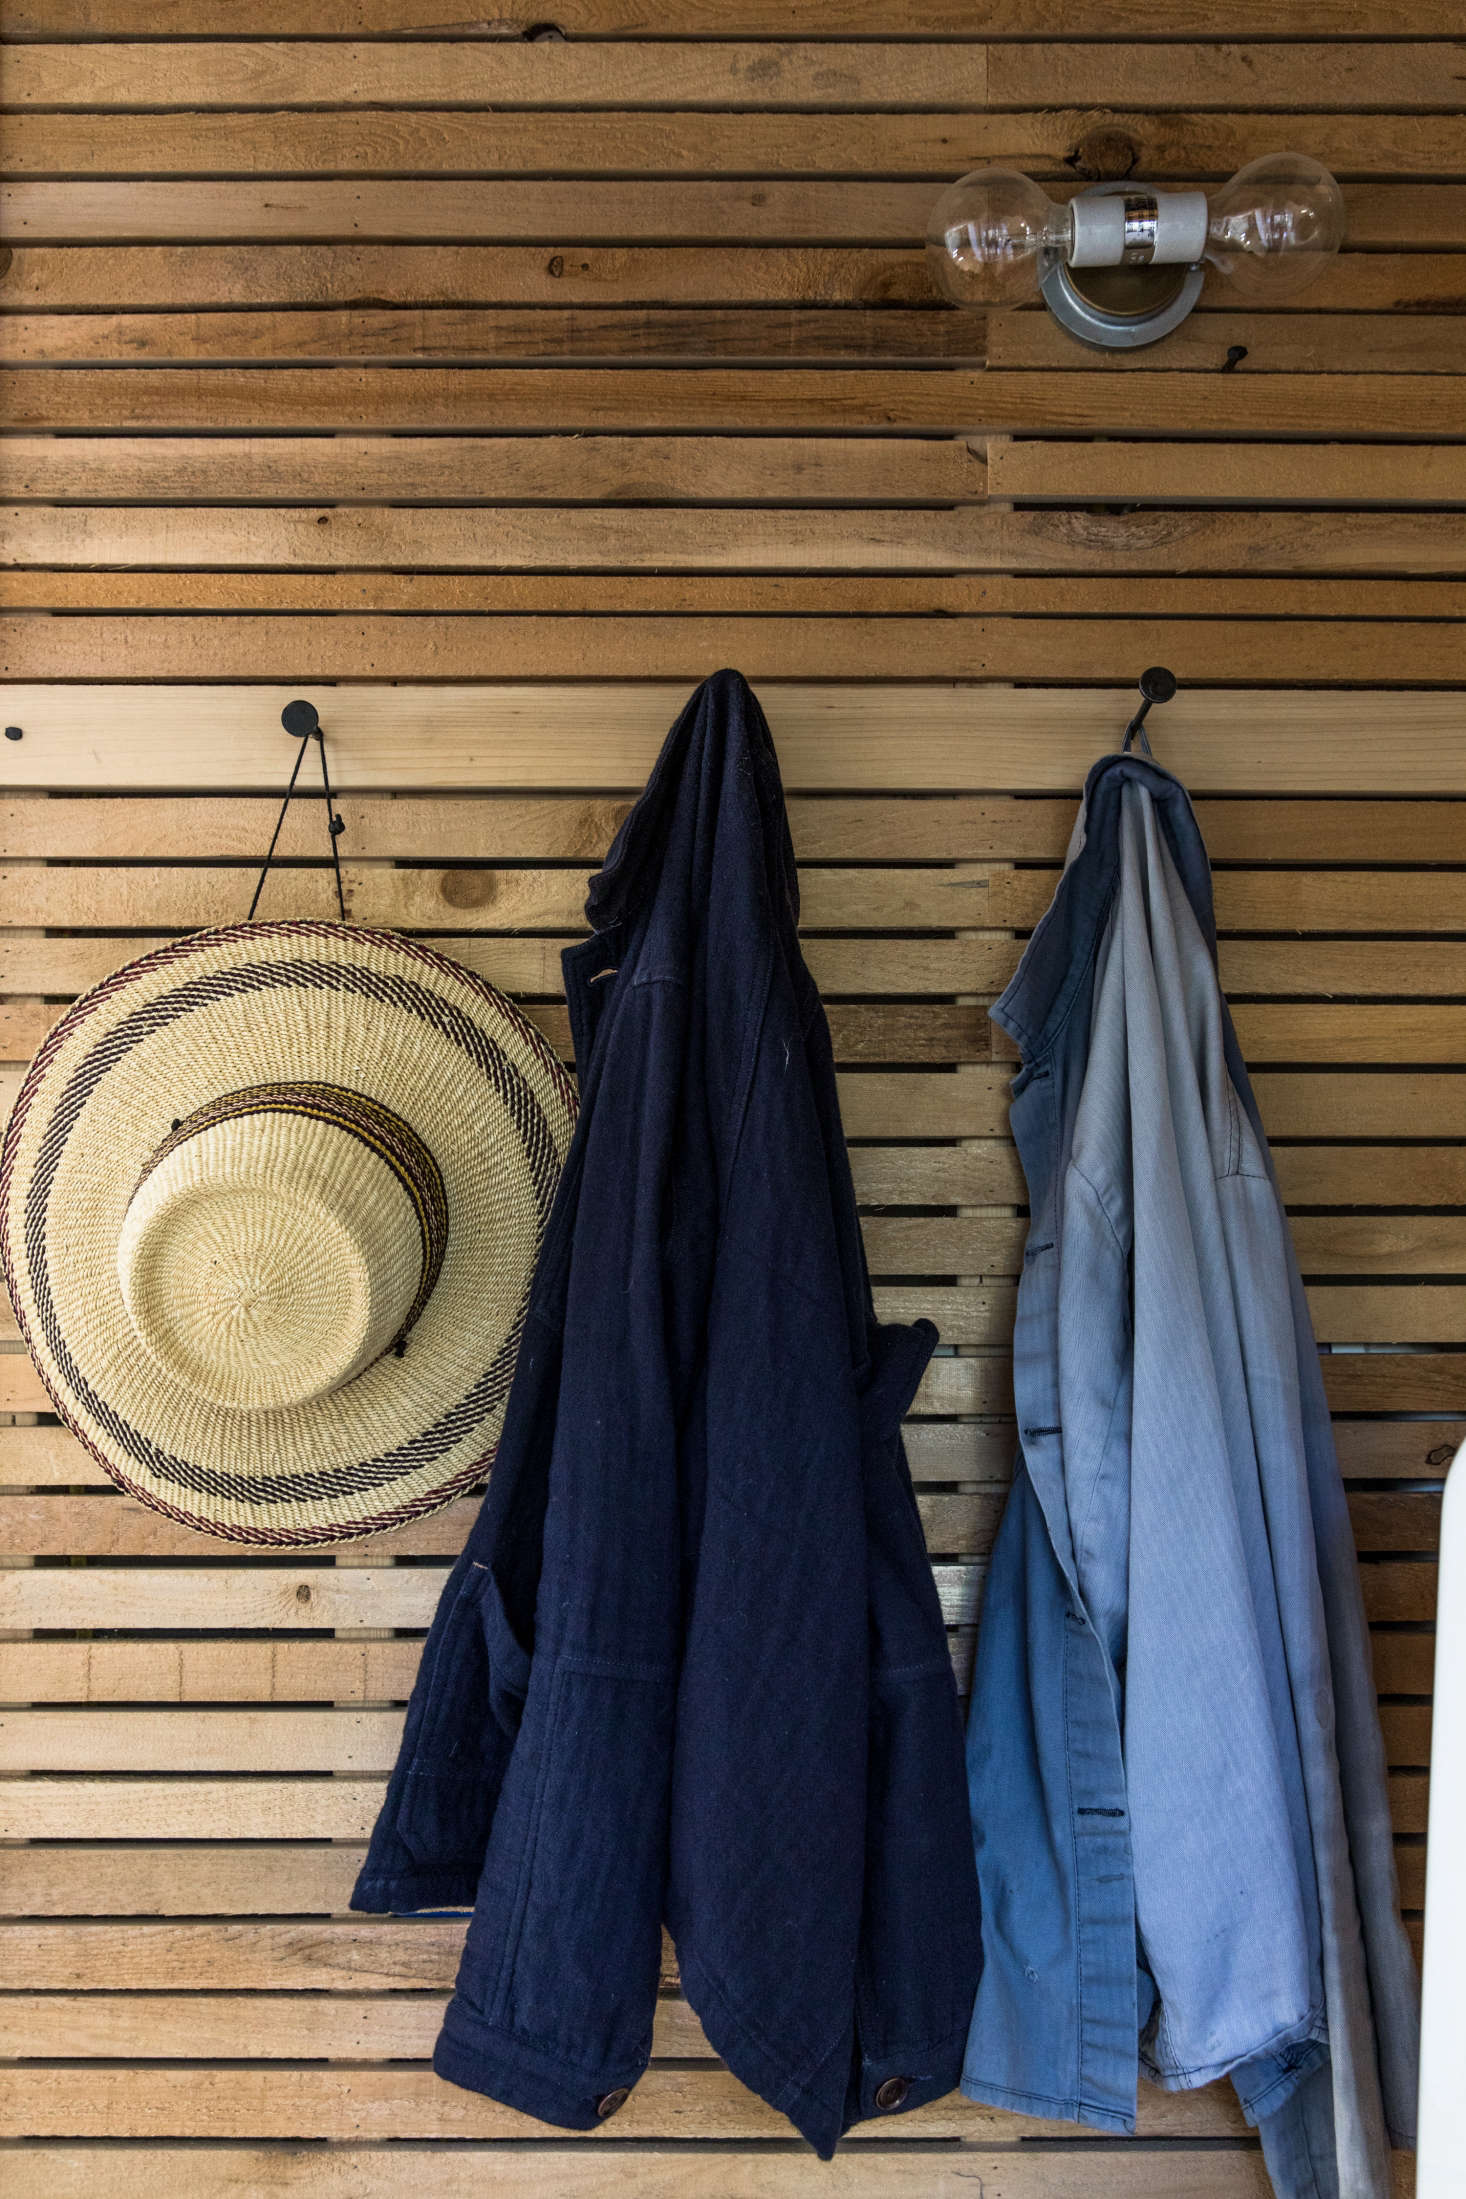 Work shirts hang on hooks from Sugar Tools in Camden, Maine. The pared-down lighting fixtures throughout the house are theU/data-src=